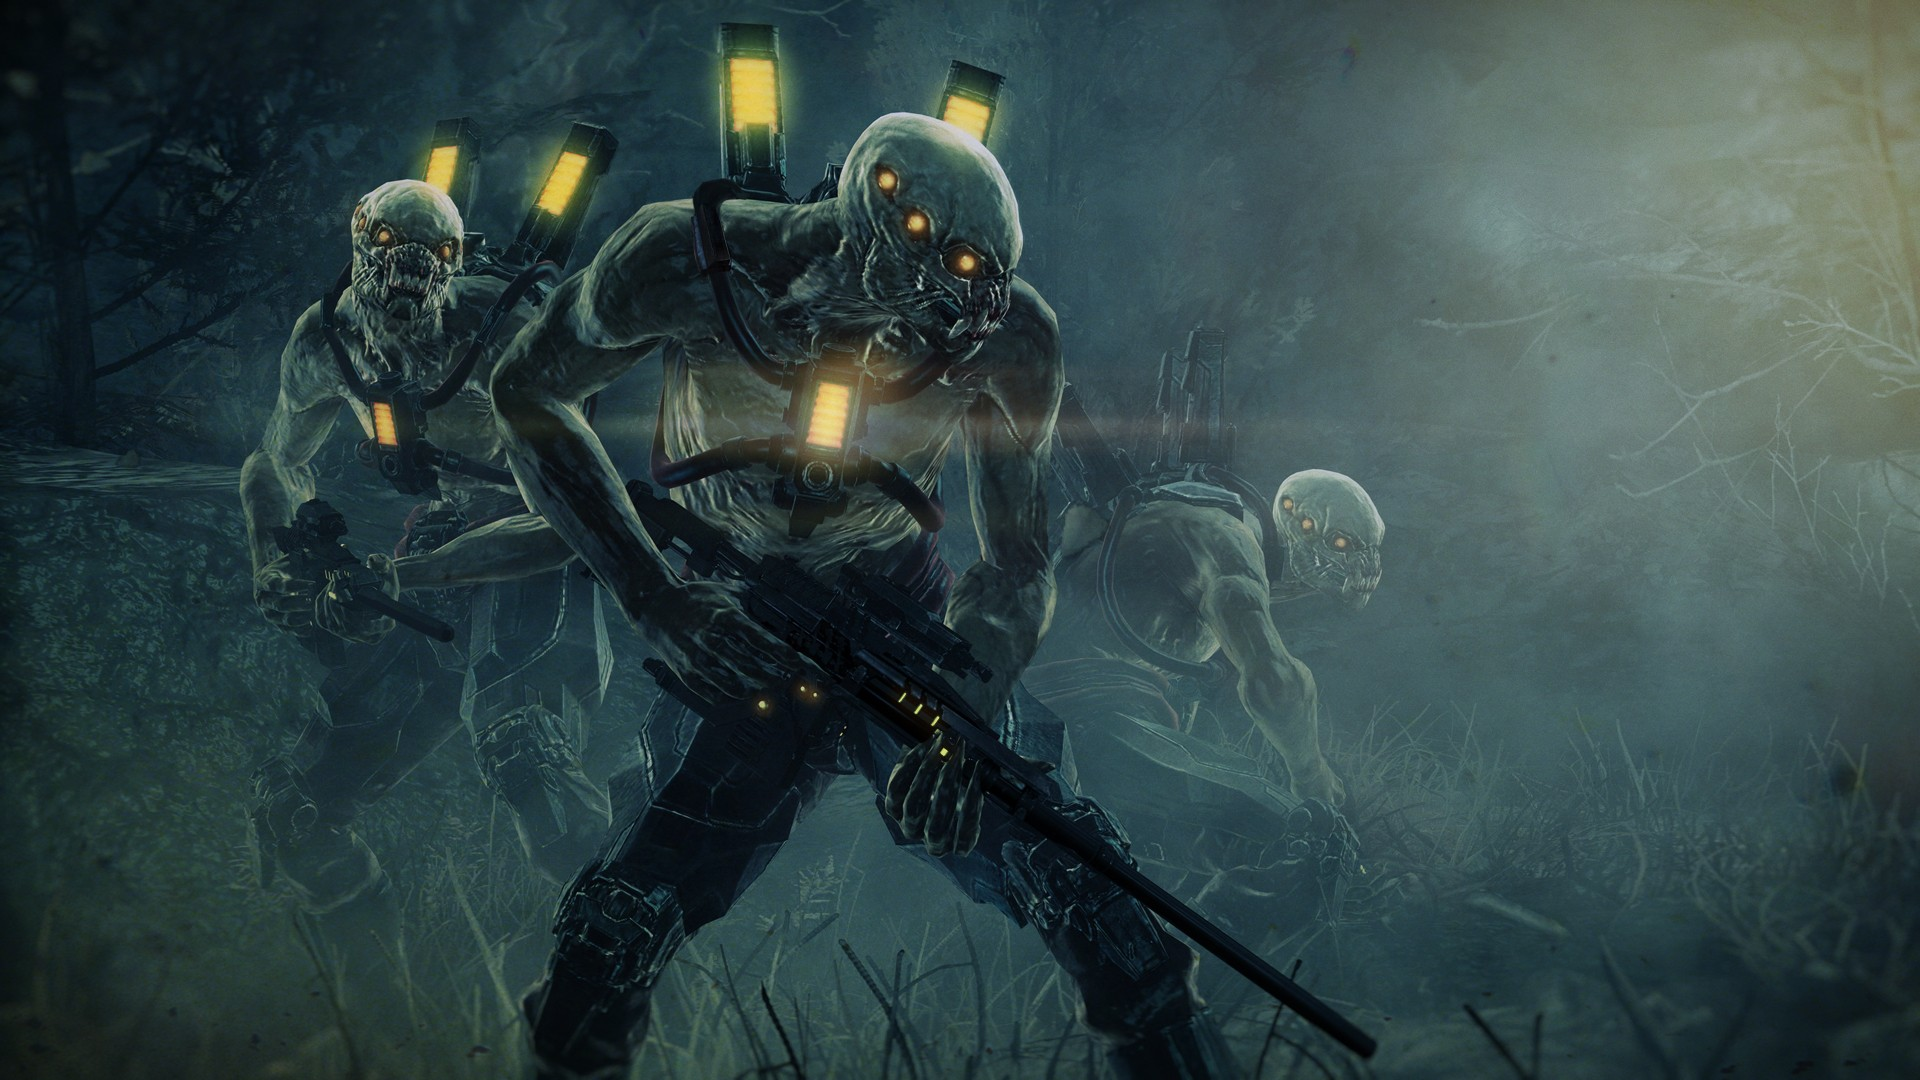 General 1920x1080 gun yellow eyes Resistance: Fall of Man creature horror weapon